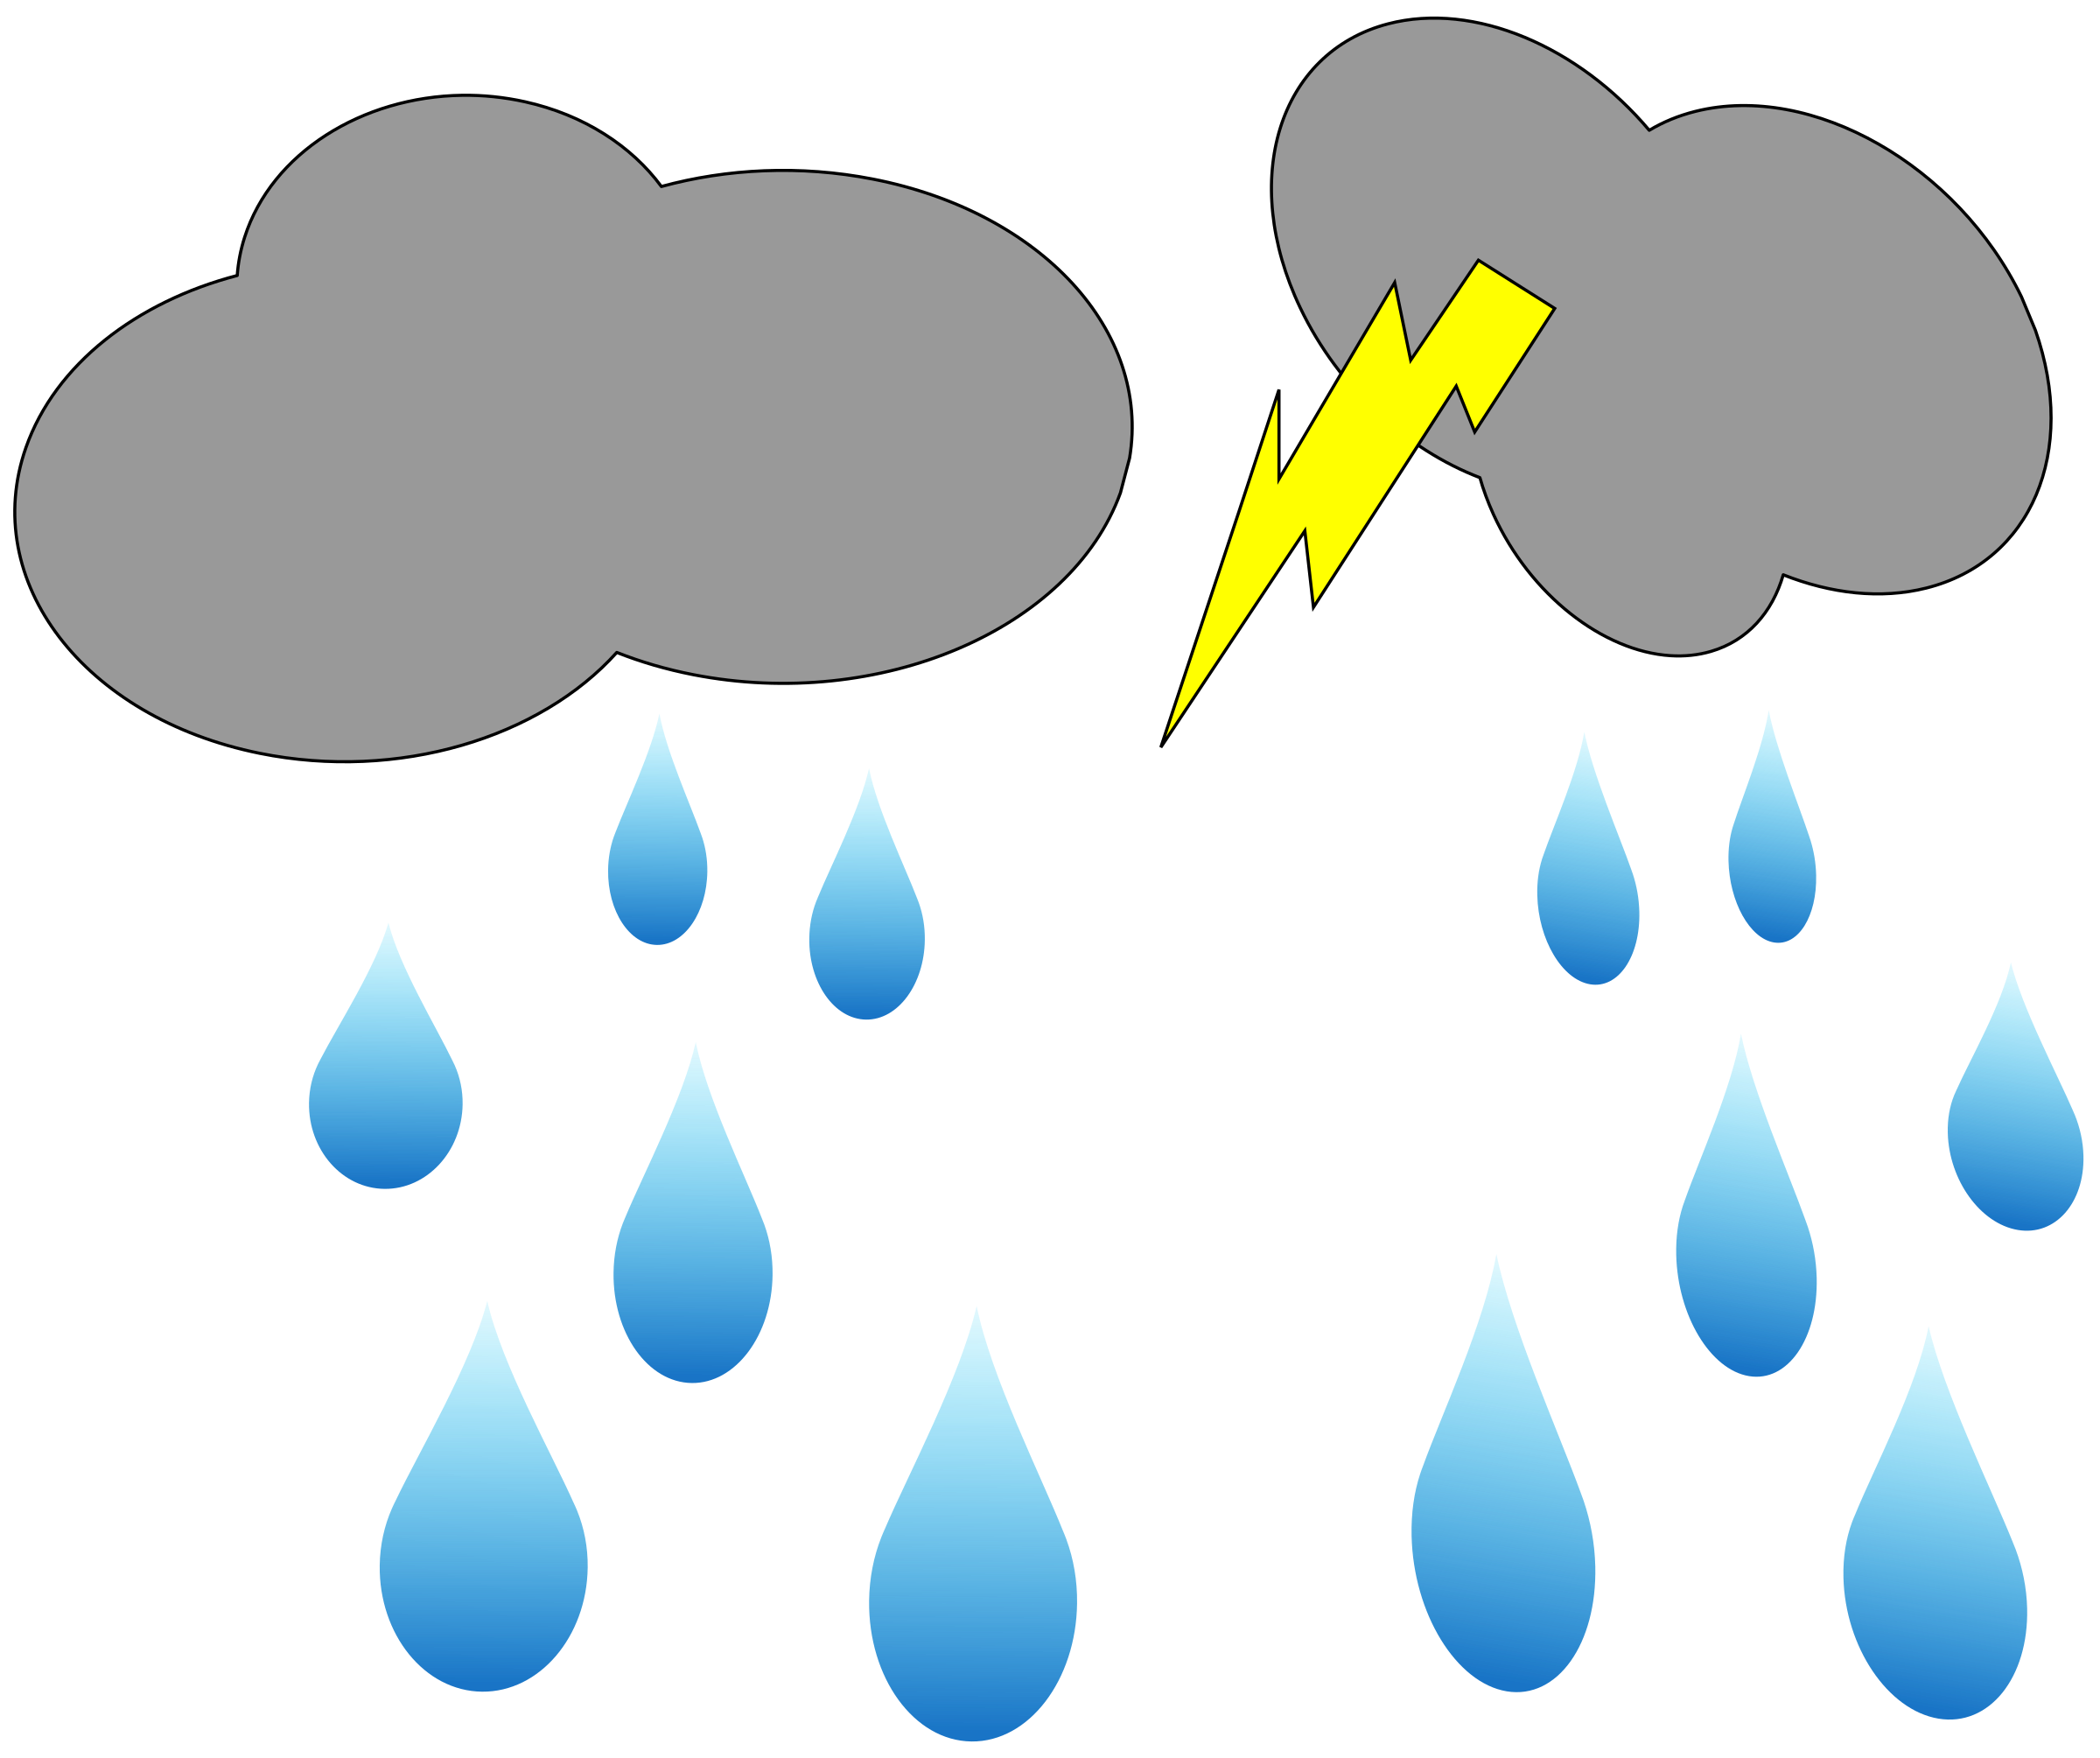 rain clouds drawing at getdrawings com free for personal use rain rh getdrawings com rain cloud clipart black and white cloud rain clipart